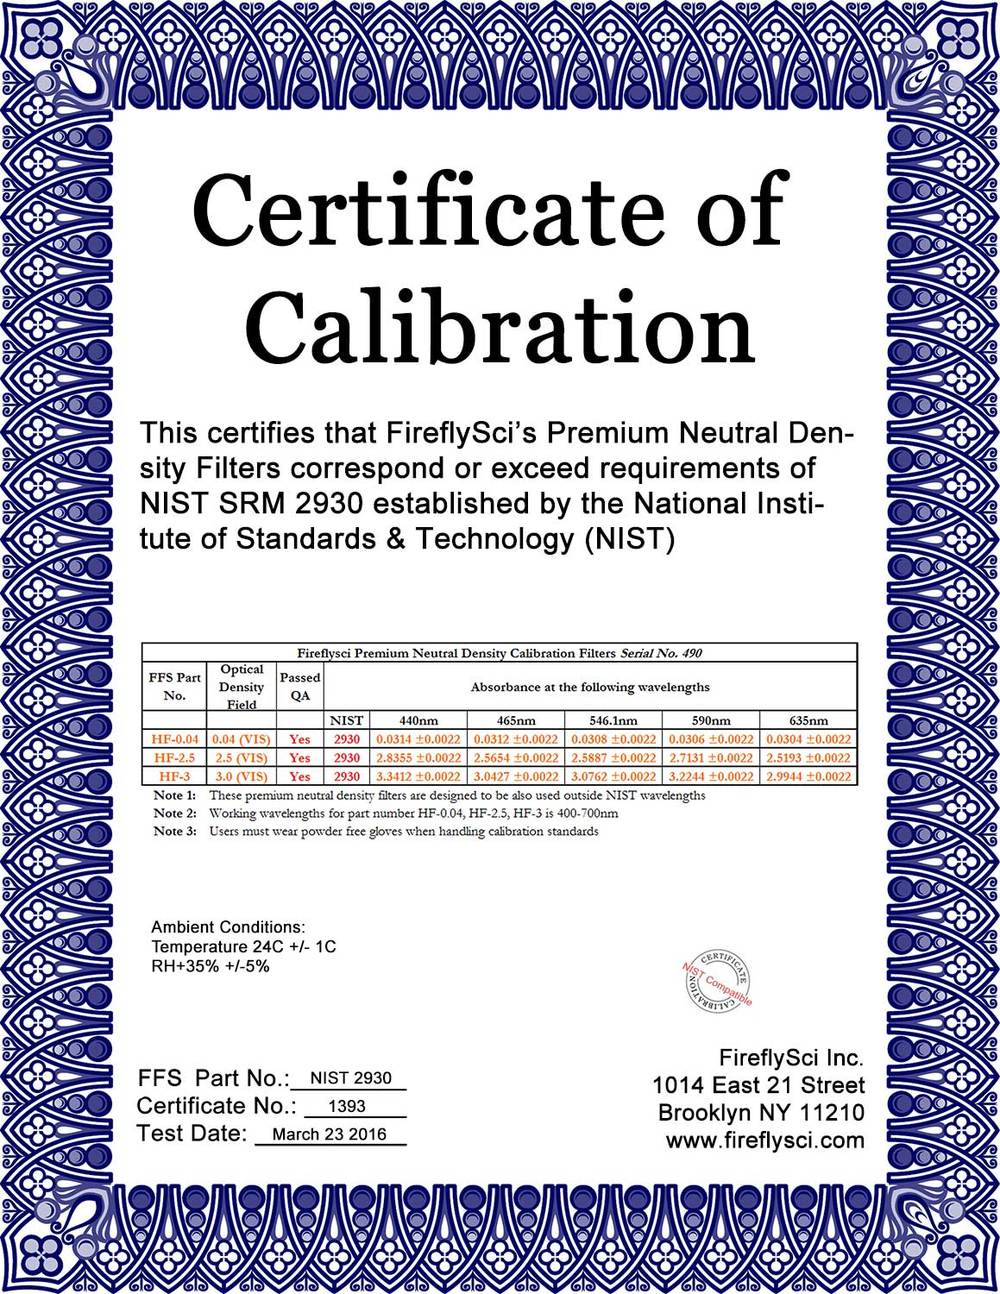 Sample NIST-2930 Certificate of Calibration